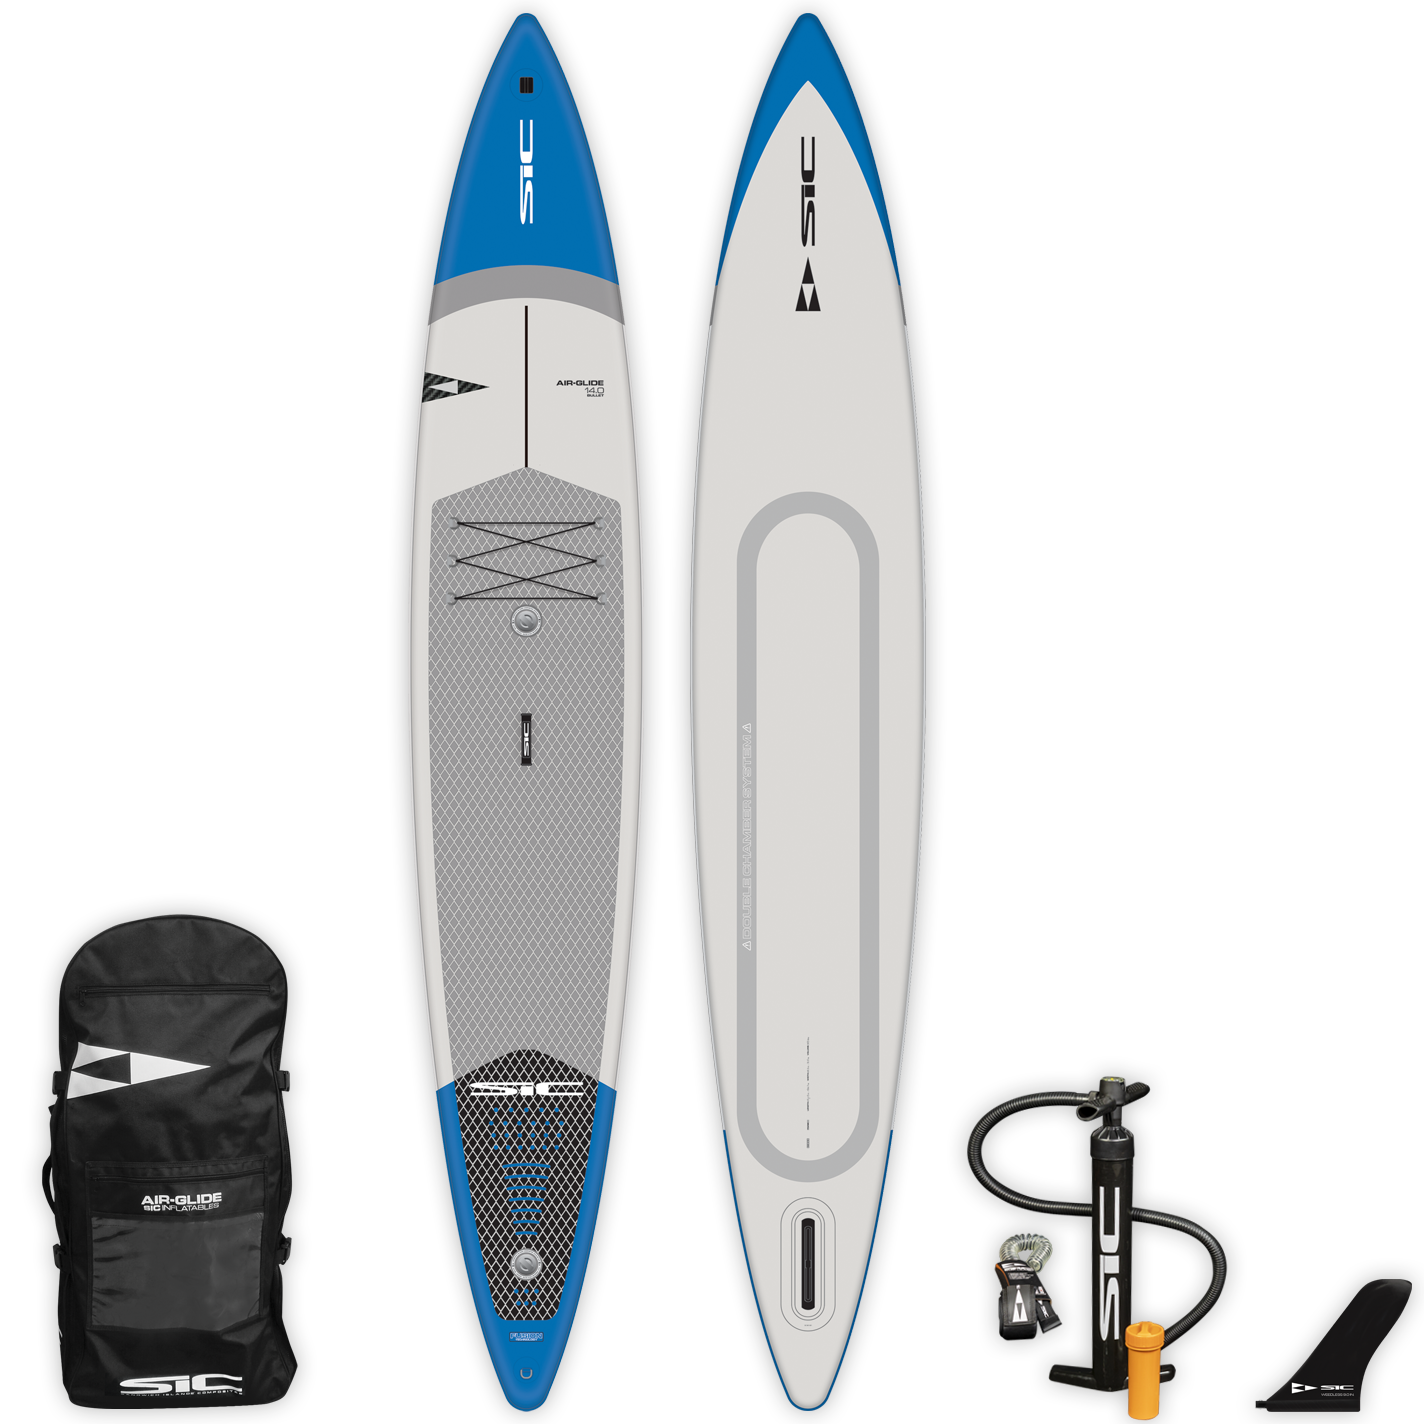 "INFLATABLE SIC SUP - BULLET AIR-GLIDE (FST) 14'0"" x 28.5"" - Deck - 105226"